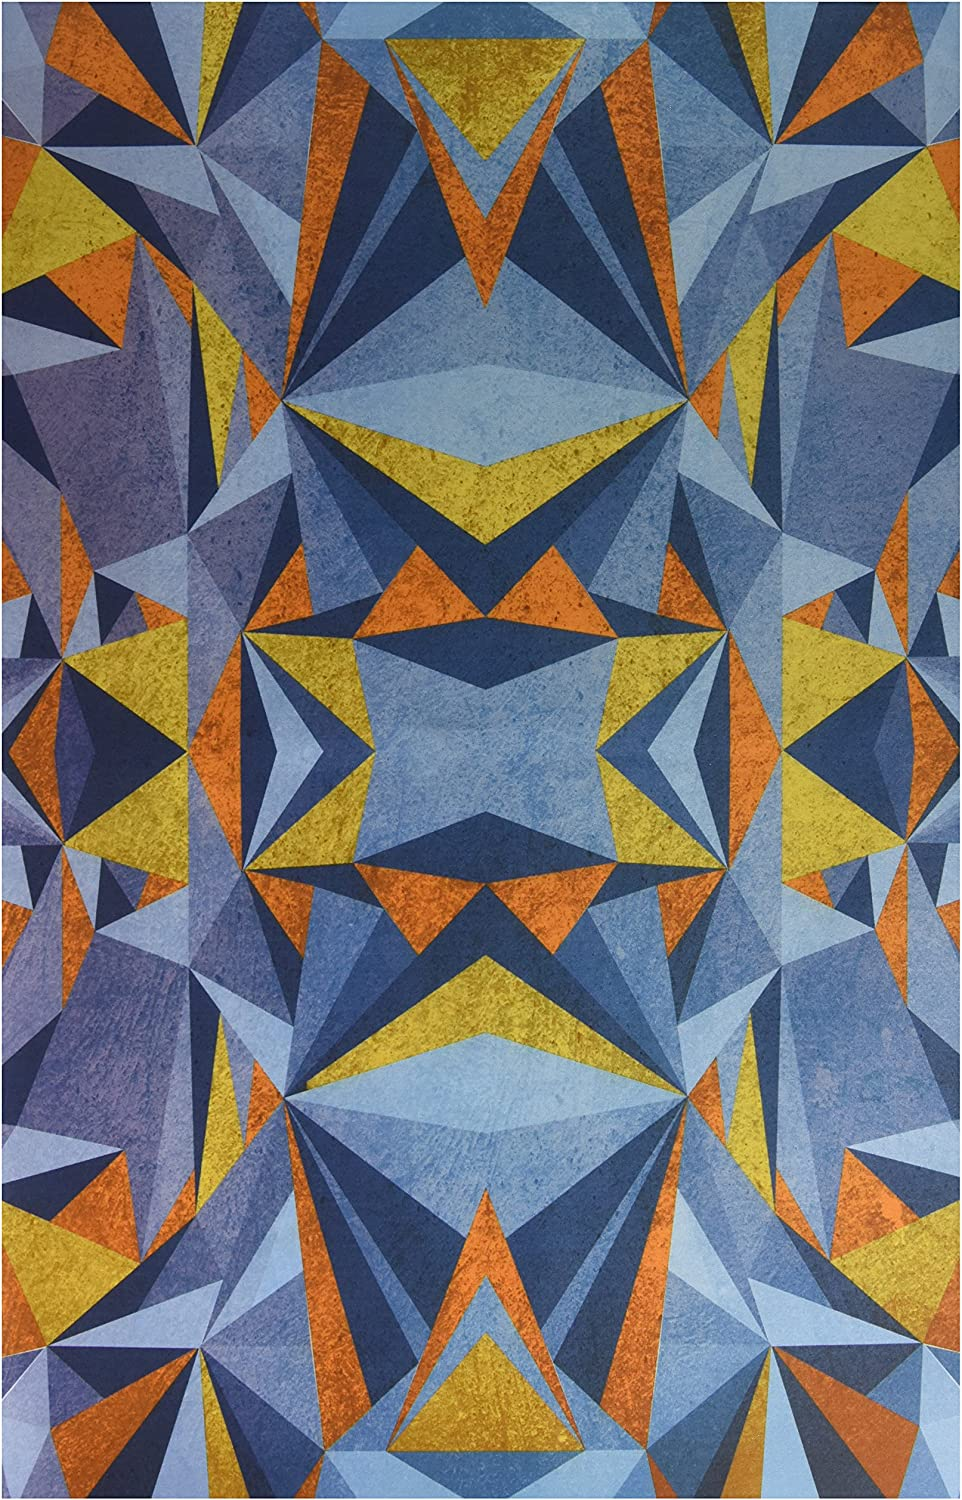 Kess InHouse Nika Martinez Abstraction bluee and gold Feeding Mat for Pet Bowl, 24 by 15Inch